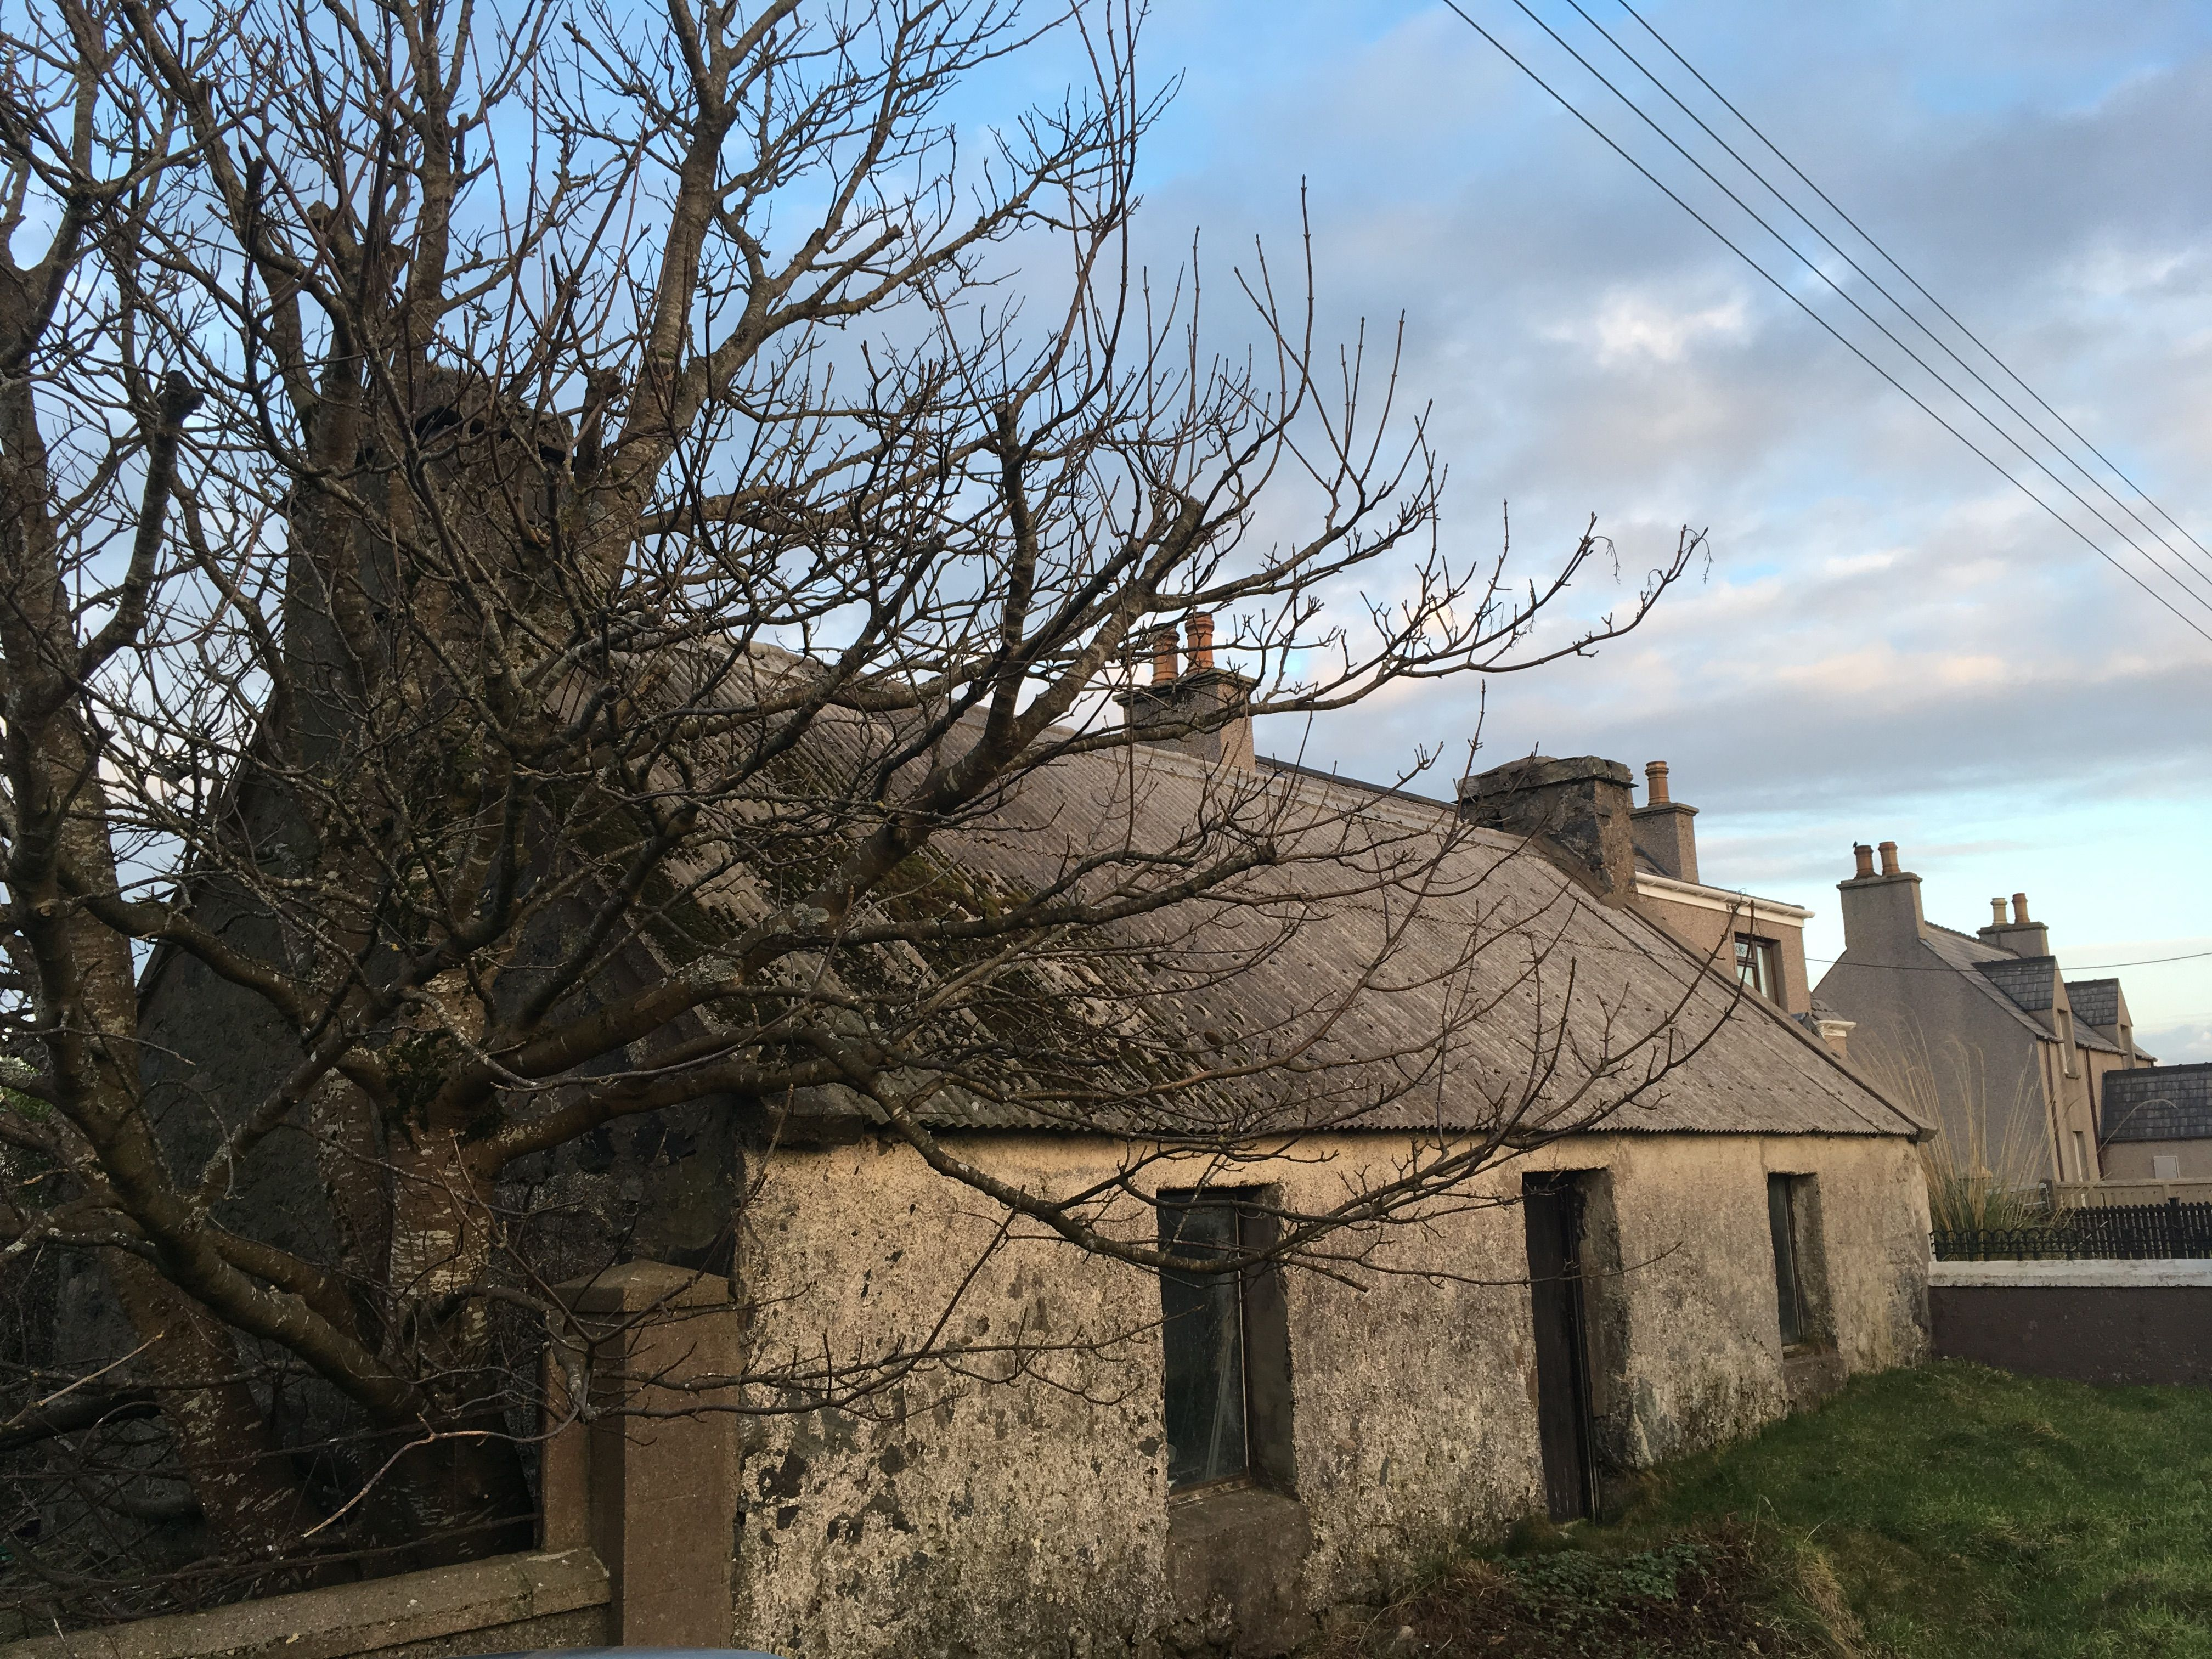 Pin By Robert Brennan On Cottages Scottish Cottages Outdoor Outdoor Structures